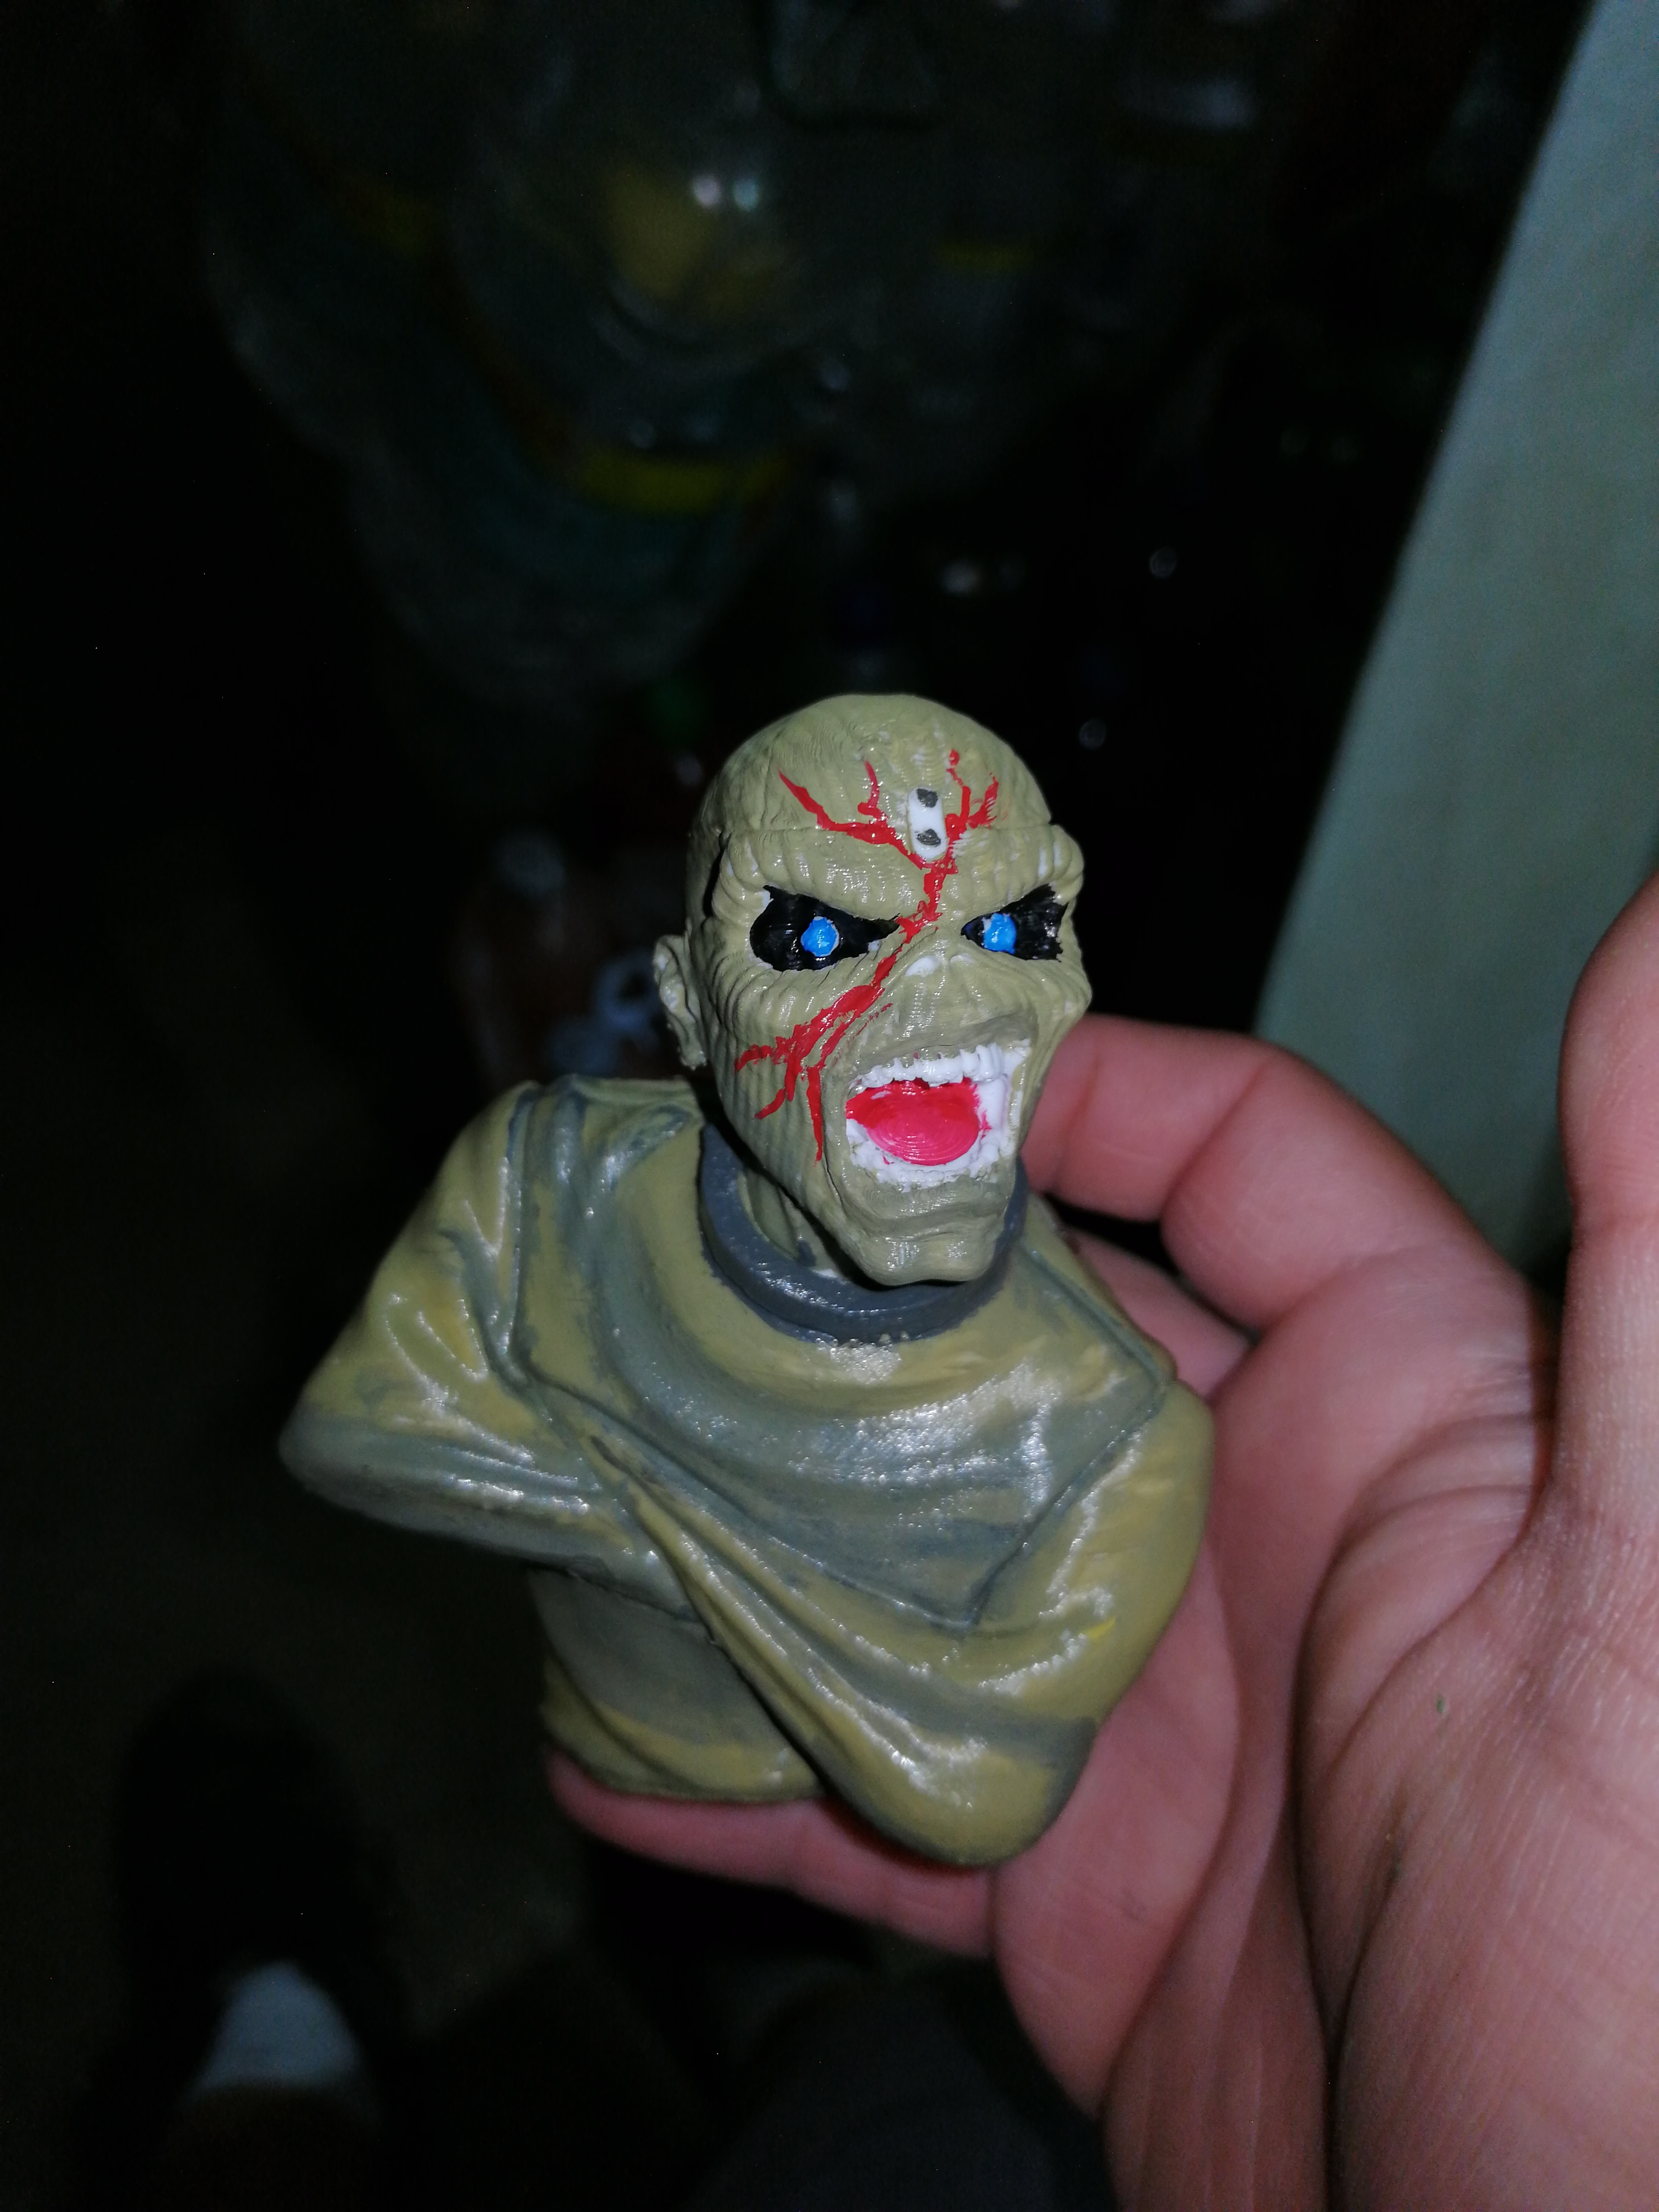 Download STL file Eddie - Piece of Mind [Iron Maiden] • 3D print design, maikelalexanderacevedo